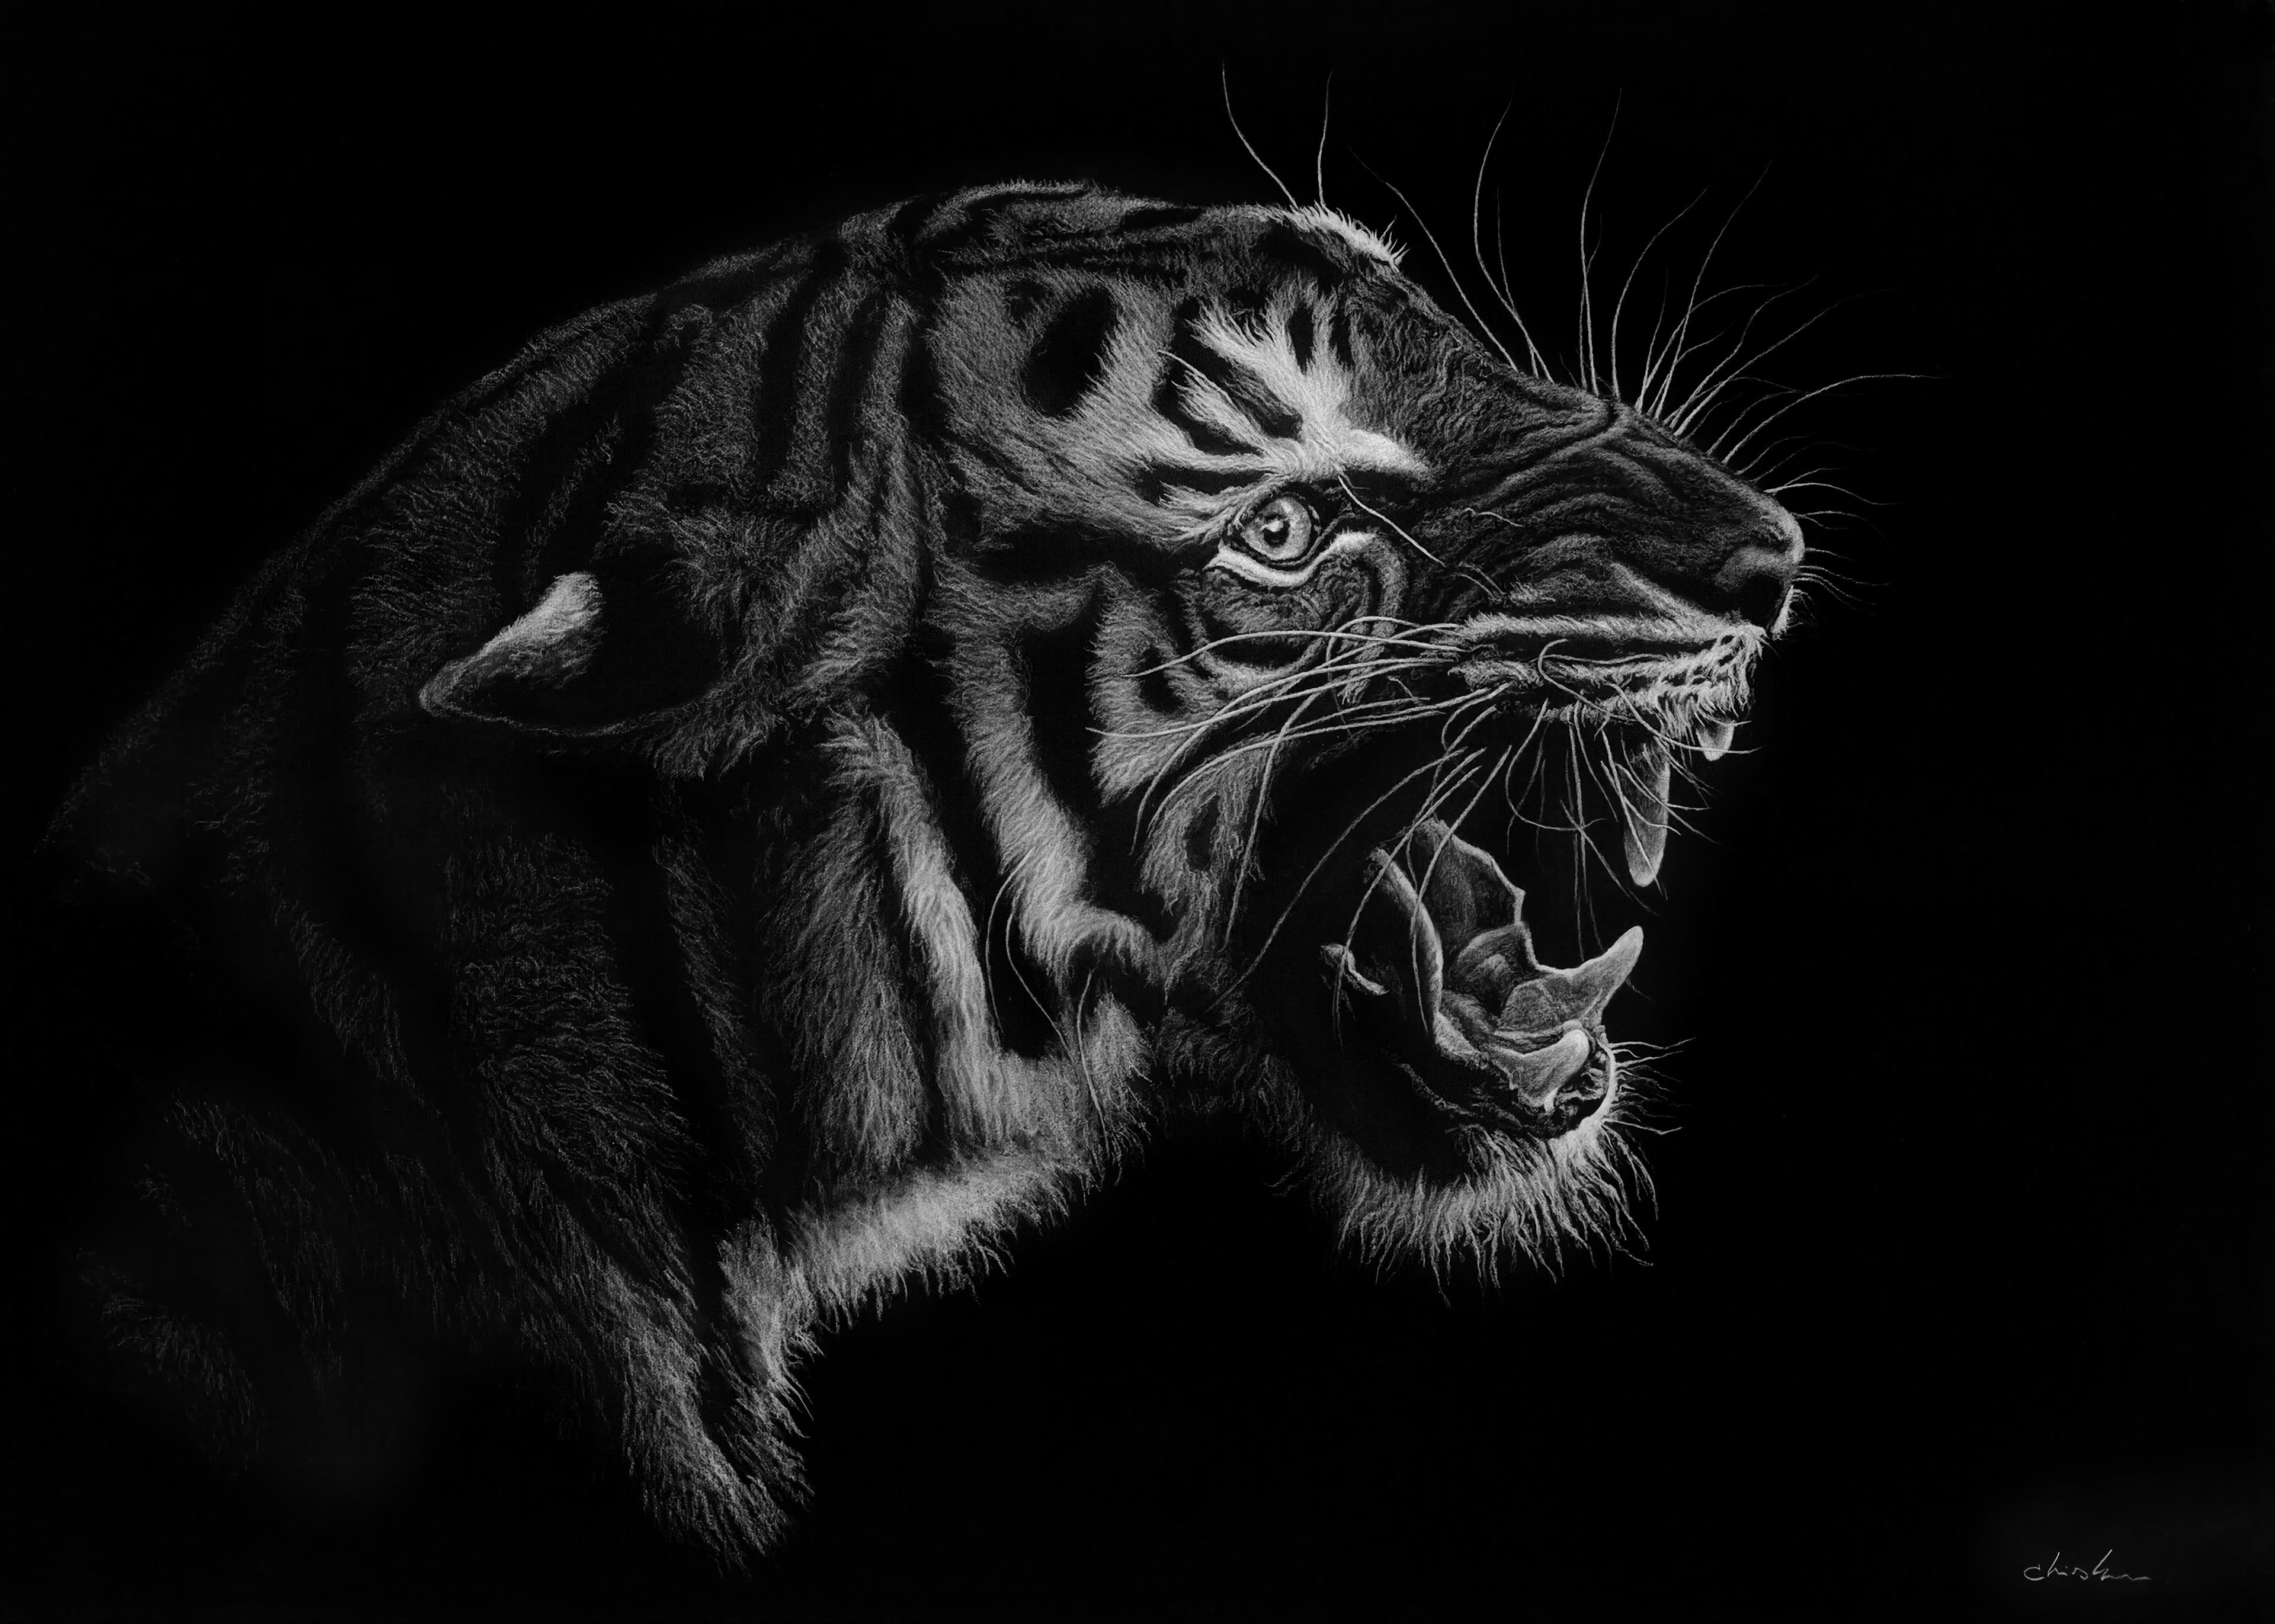 55776 Screensavers and Wallpapers Grin for phone. Download Art, Grin, Predator, Bw, Chb, Tiger pictures for free